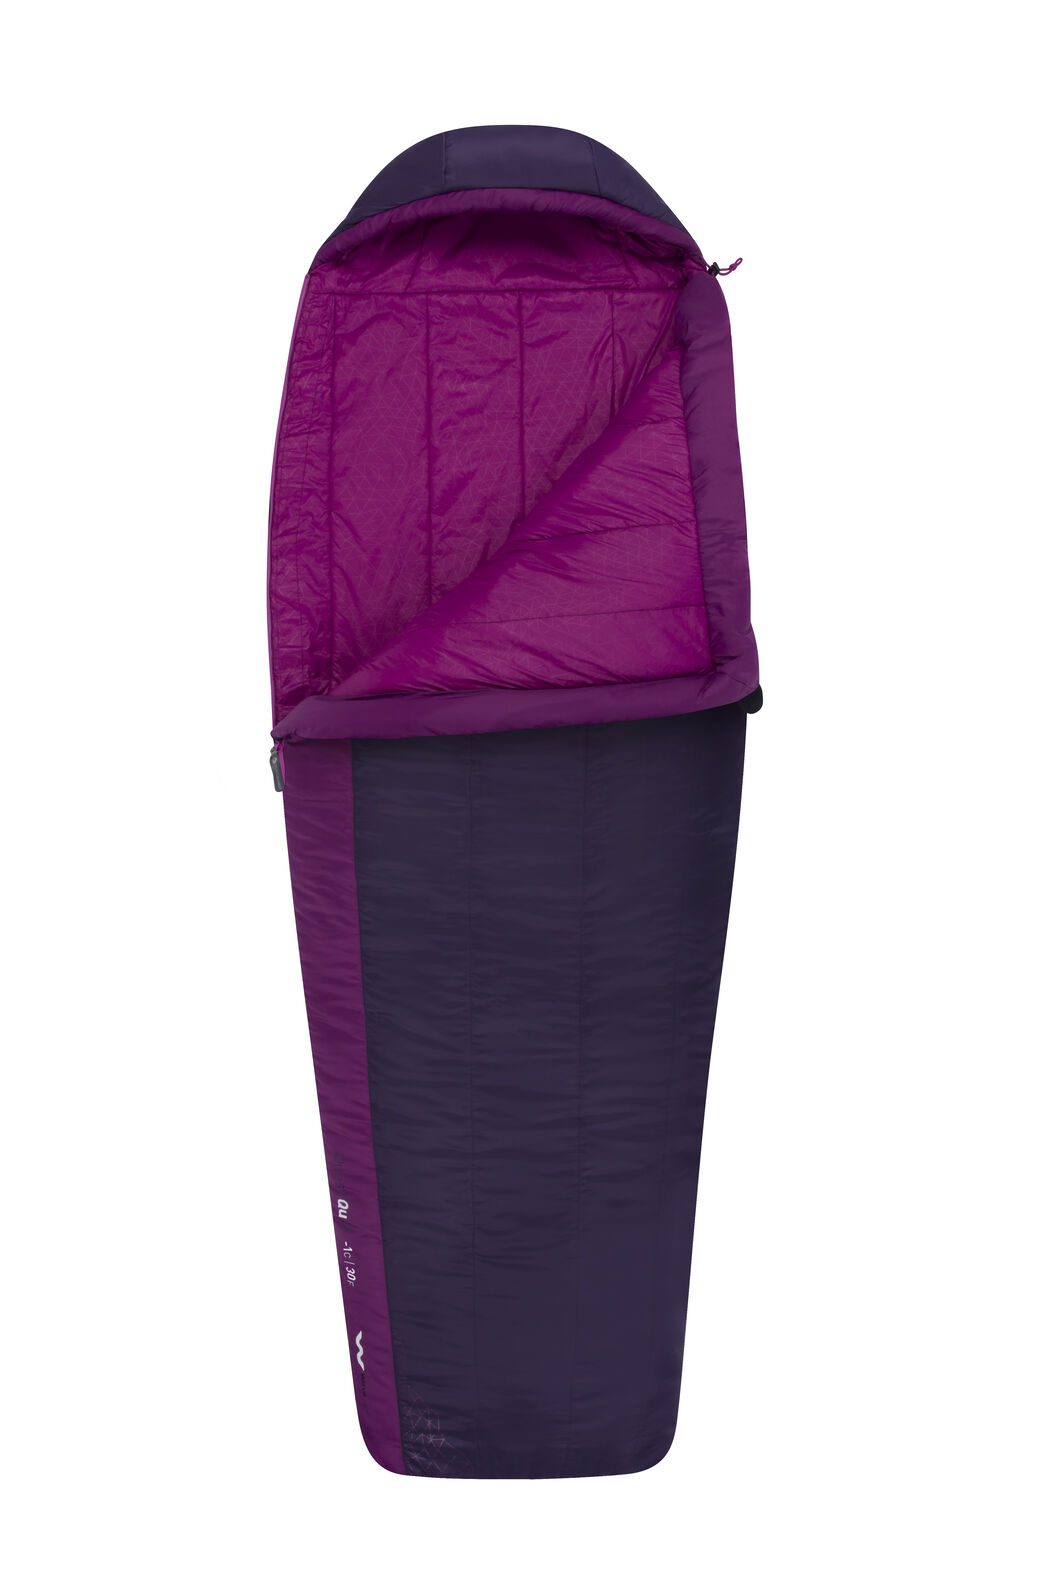 Sea to Summit Quest II Sleeping Bag - Women's Regular, Purple, hi-res